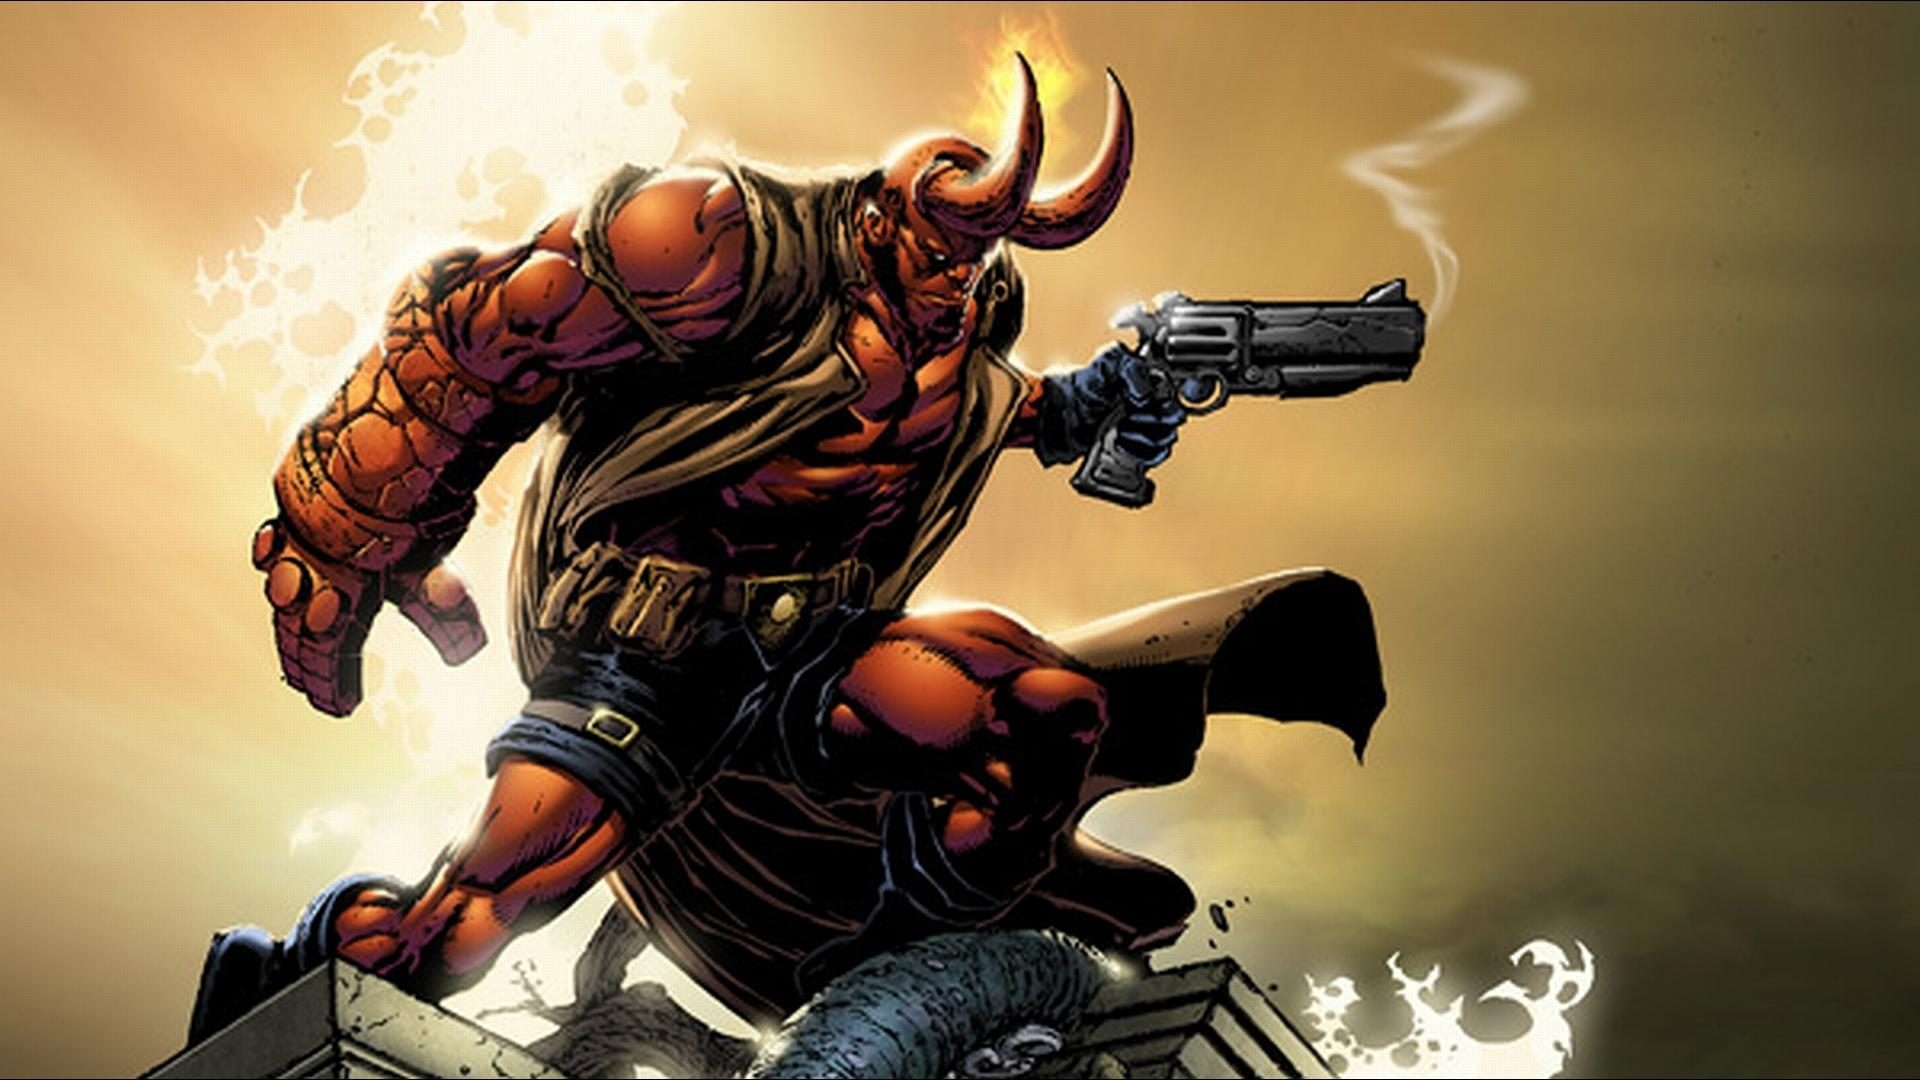 Hellboy Comics wallpapers HD quality